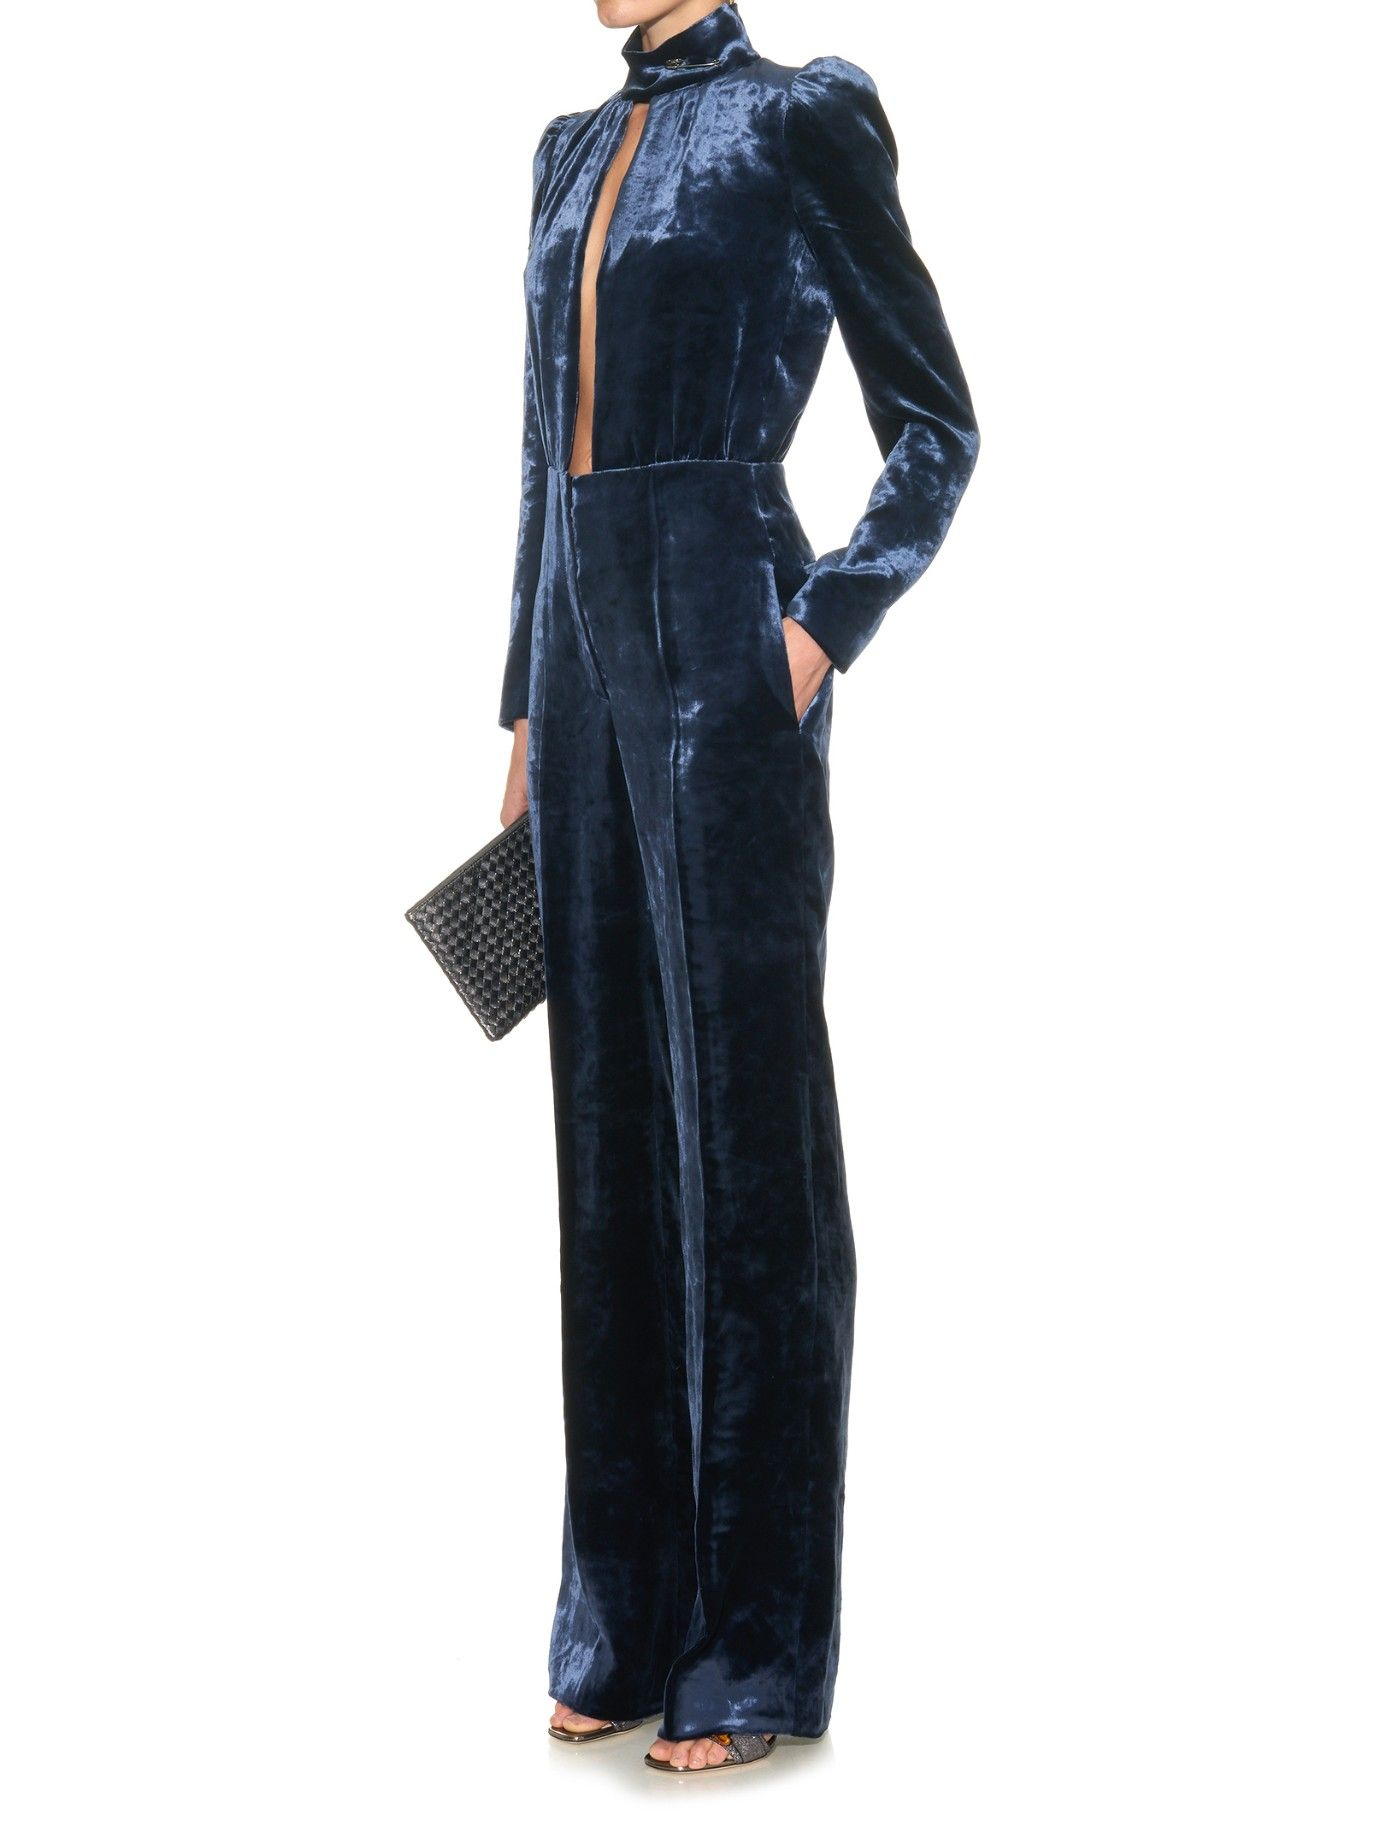 0bbbe3690780 Safety-pin velvet jumpsuit